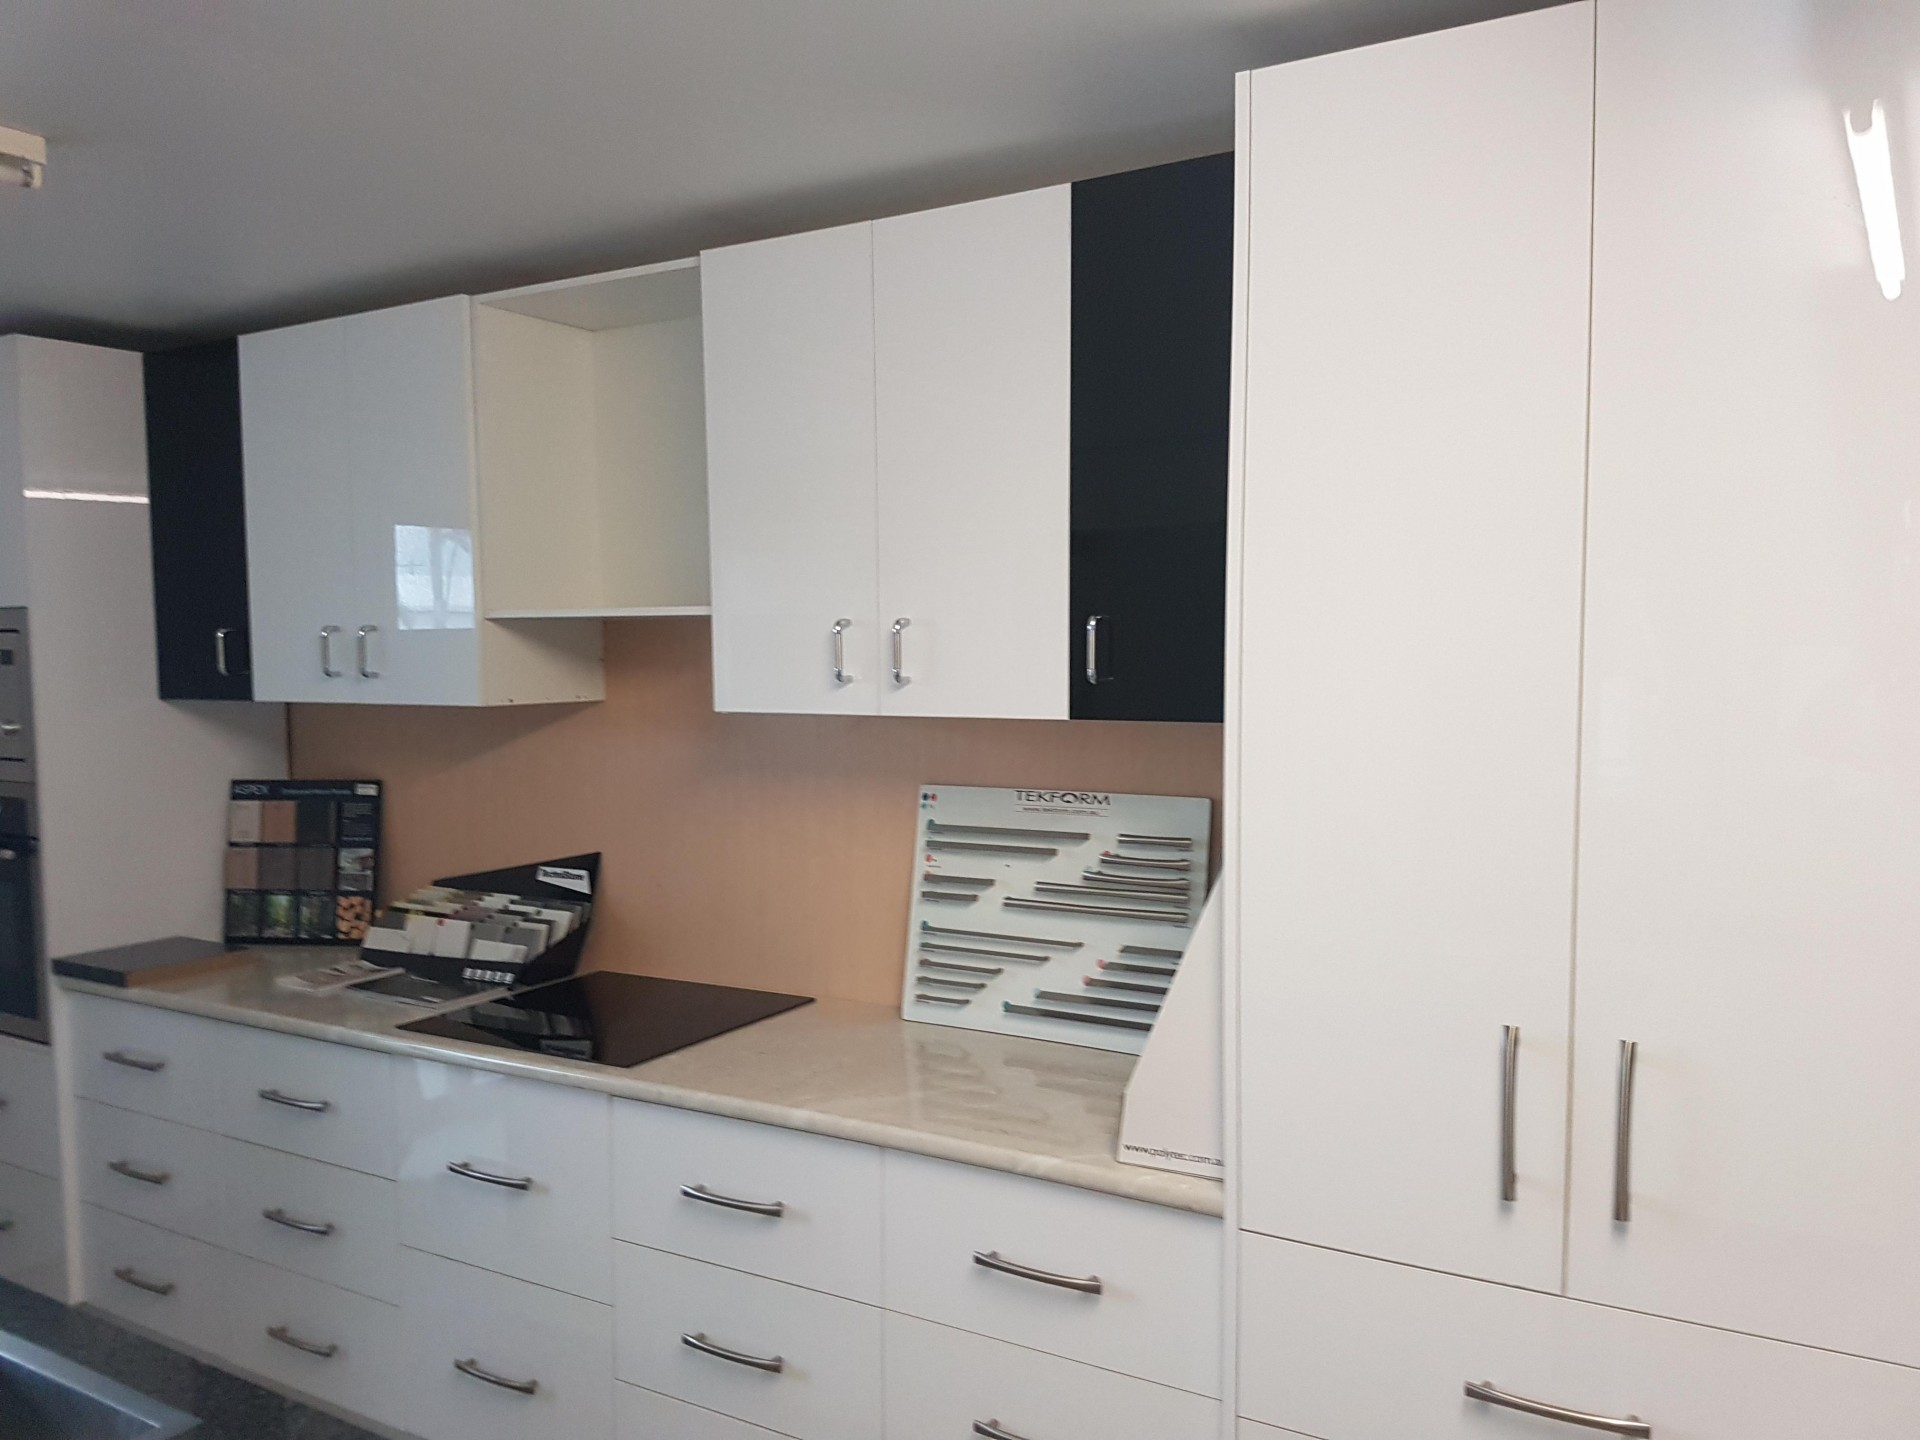 QUALITY CABINET MANUFACTURING AND INSTALLATION. WITH SEVERAL ACCEPTED ORDERS IN THE SYSTEM